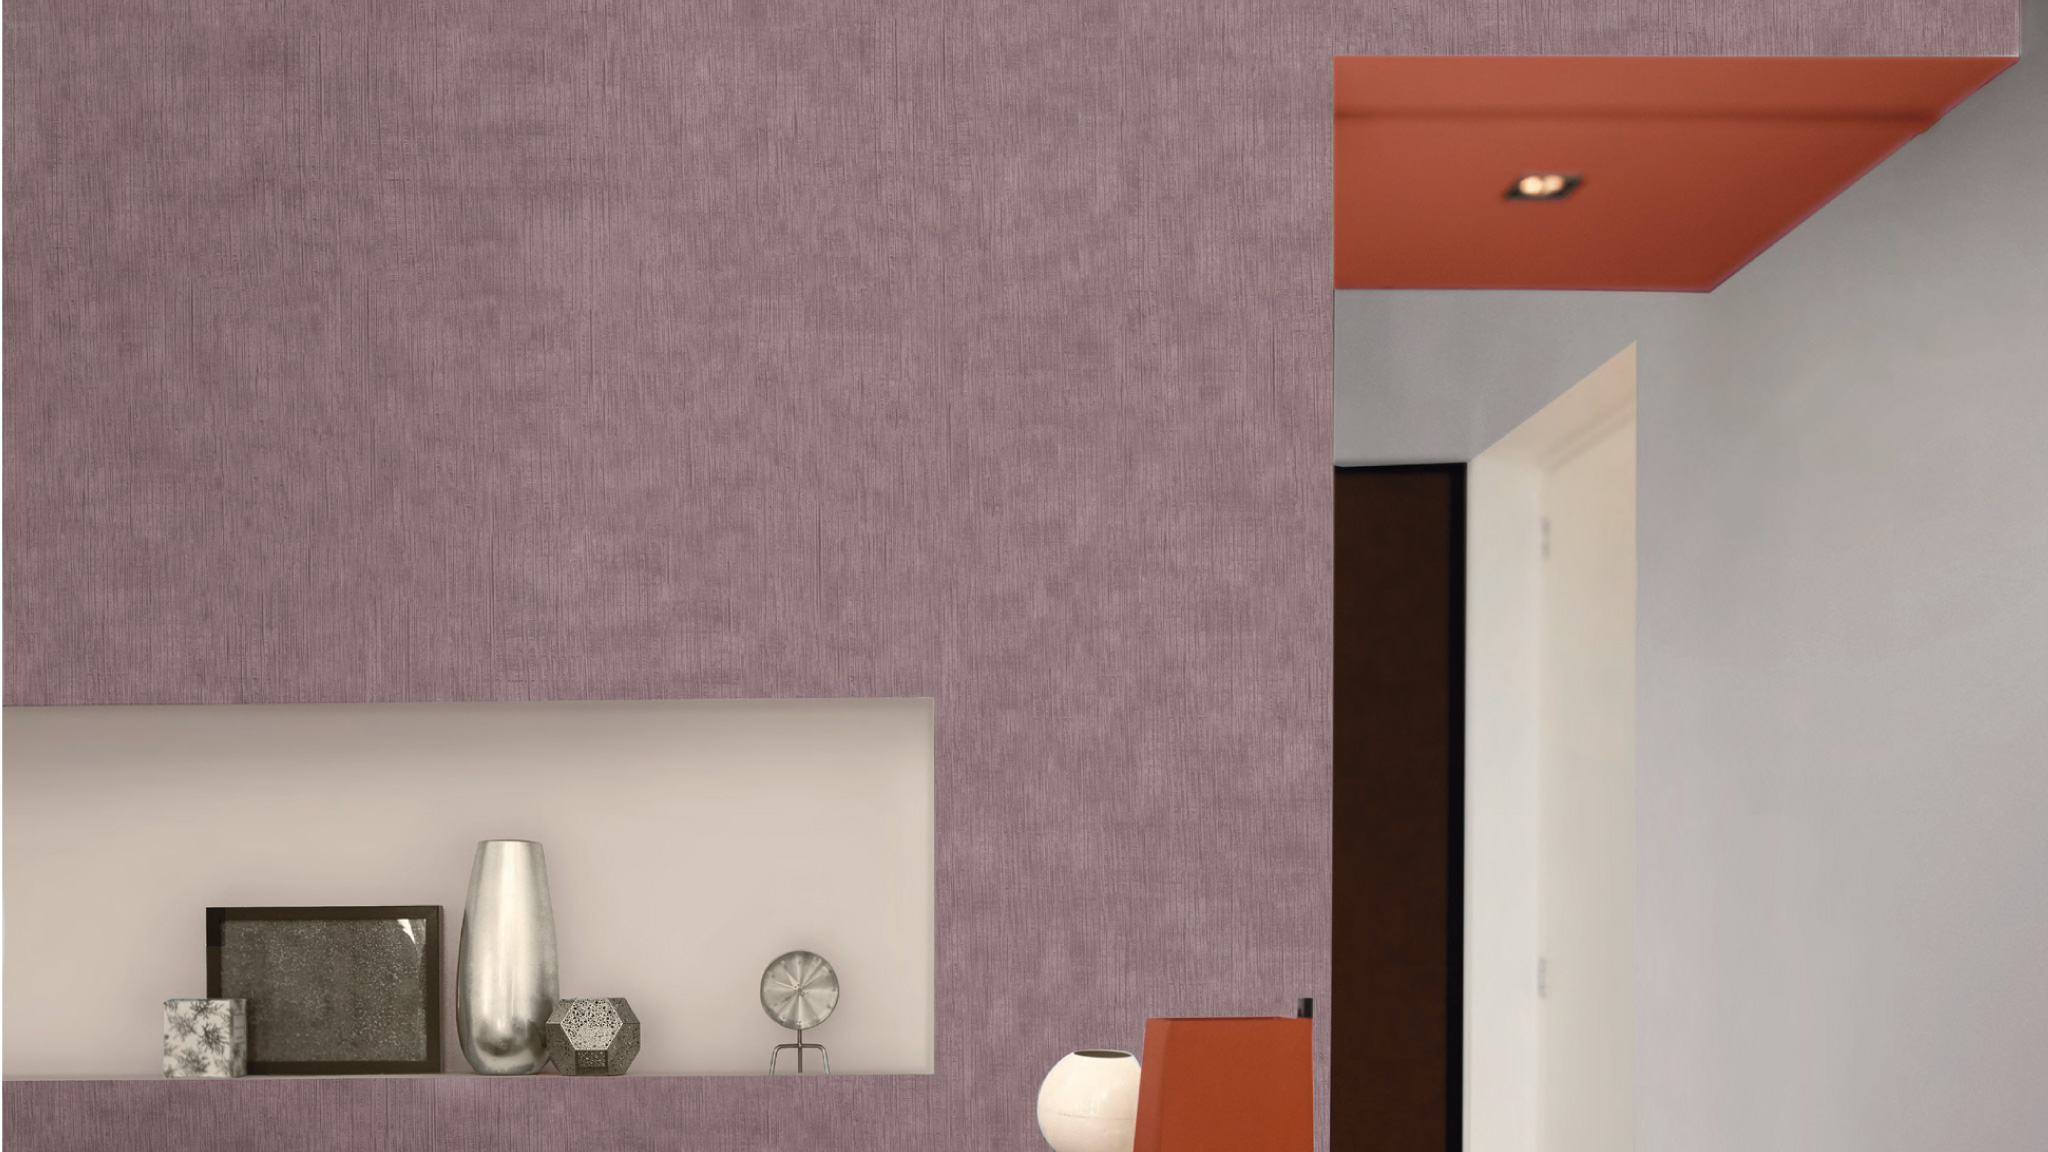 Dulux Ambiance - Classic Luxury Section 3